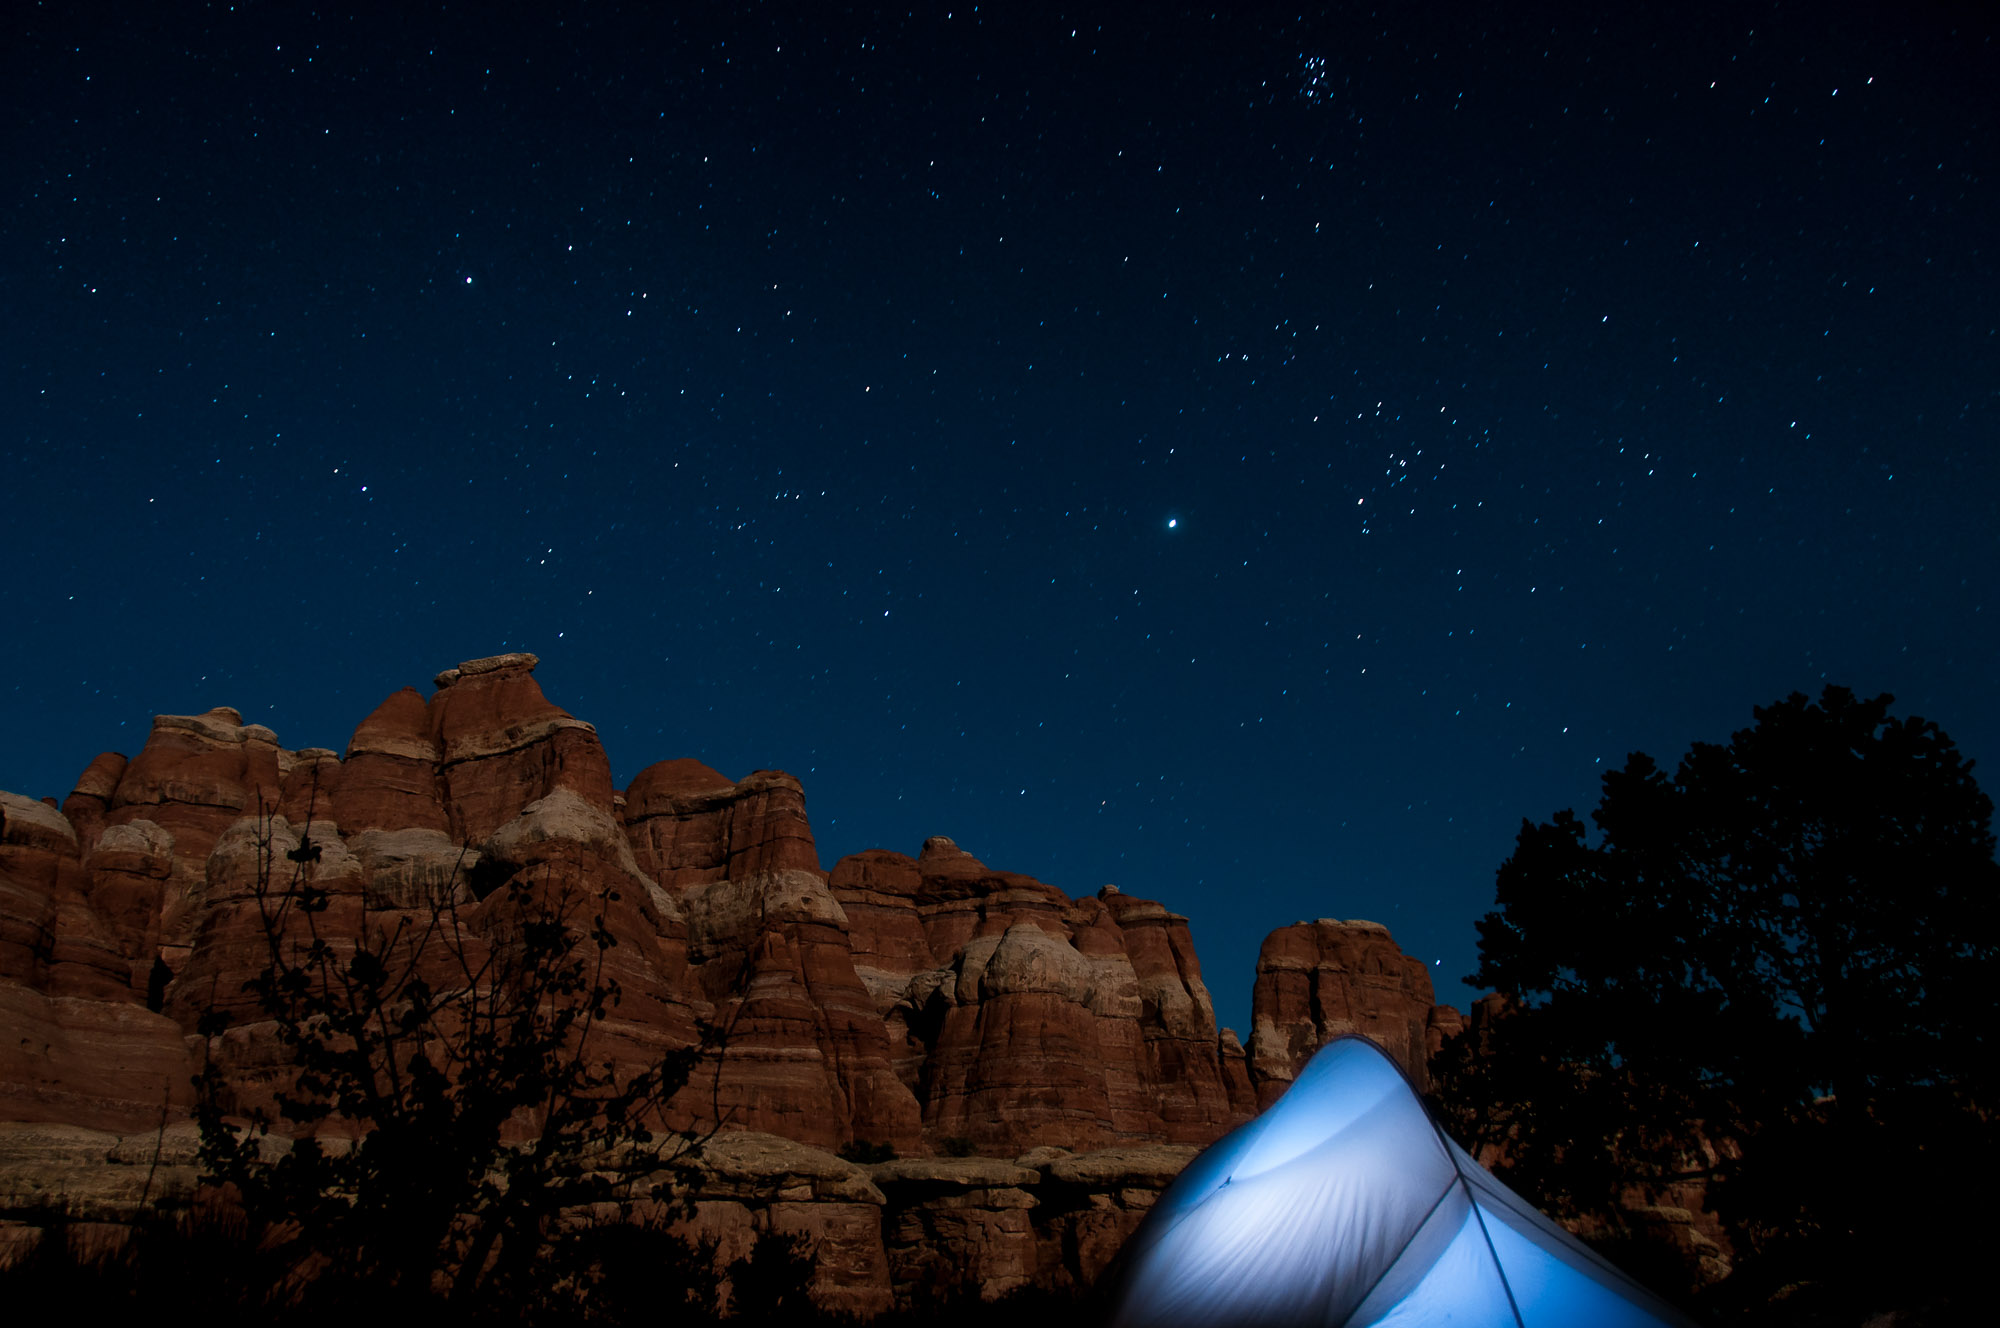 Portfolio Collections Prints Stock About Contact · Stars over tent - Needles District Canyonlands National Park Utah & Stars over tent - Needles District Canyonlands National Park ...